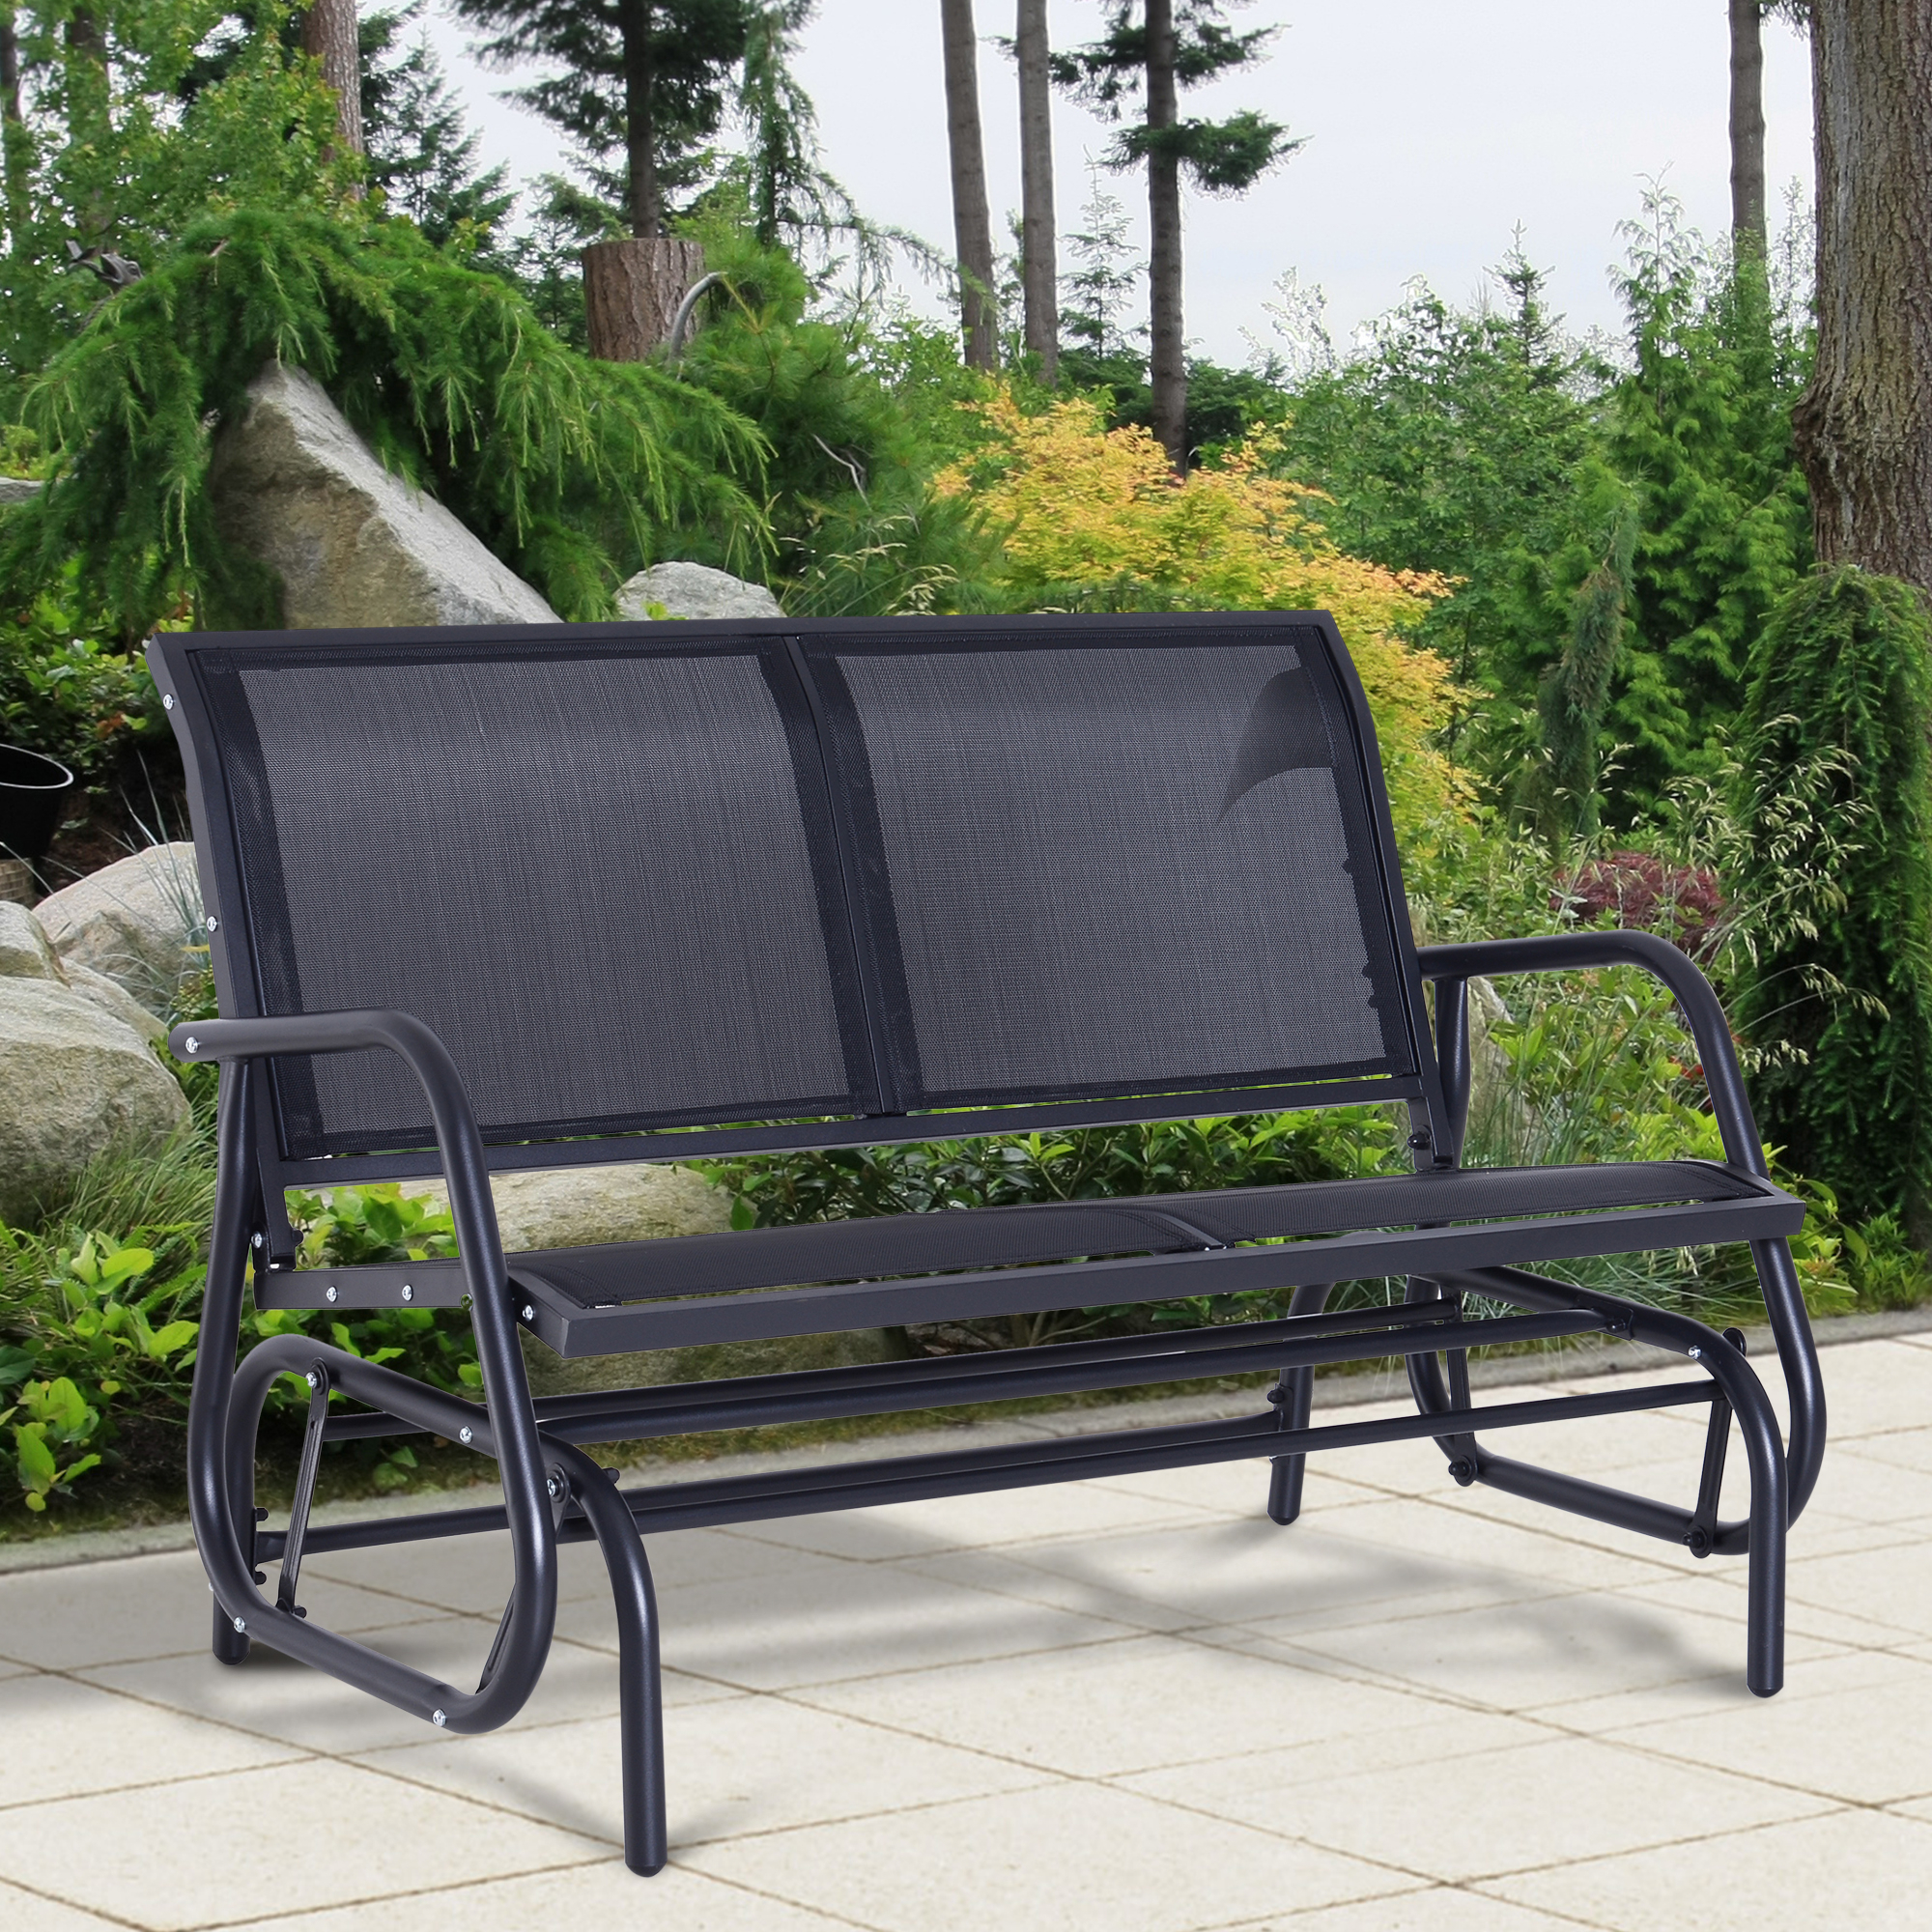 Details About Outsunny Patio Garden Glider Bench 2 Person Double Swing  Chair Rocker Deck Black With Regard To Black Outdoor Durable Steel Frame Patio Swing Glider Bench Chairs (Image 11 of 25)